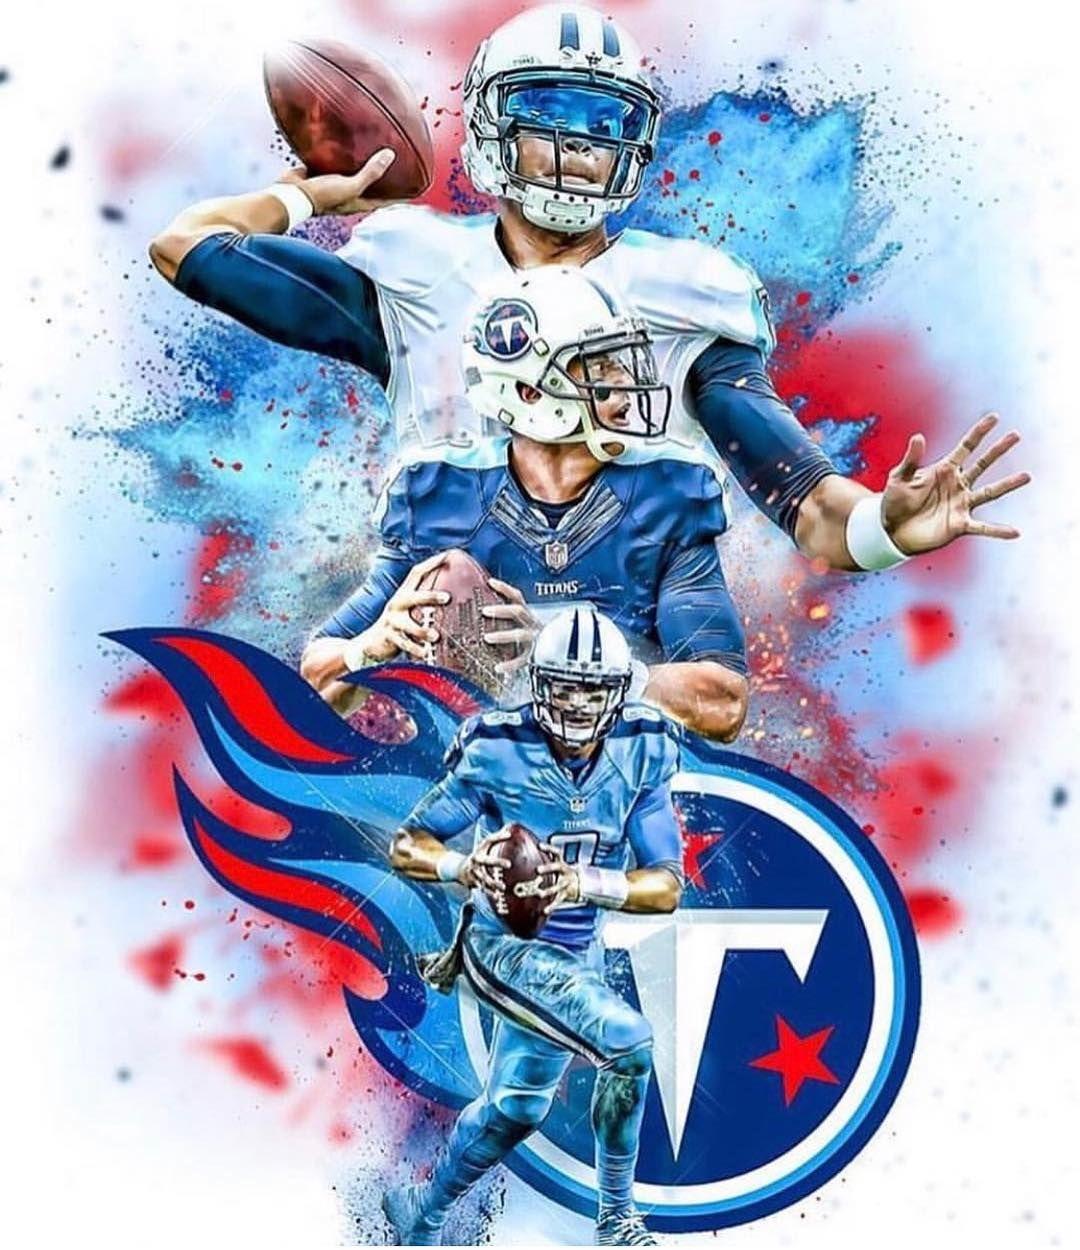 If You Have A Cool Titans Edit You Would Like Highlighted Dm Me Titanup Tennessee Titans Football Nfl Titans Titans Football